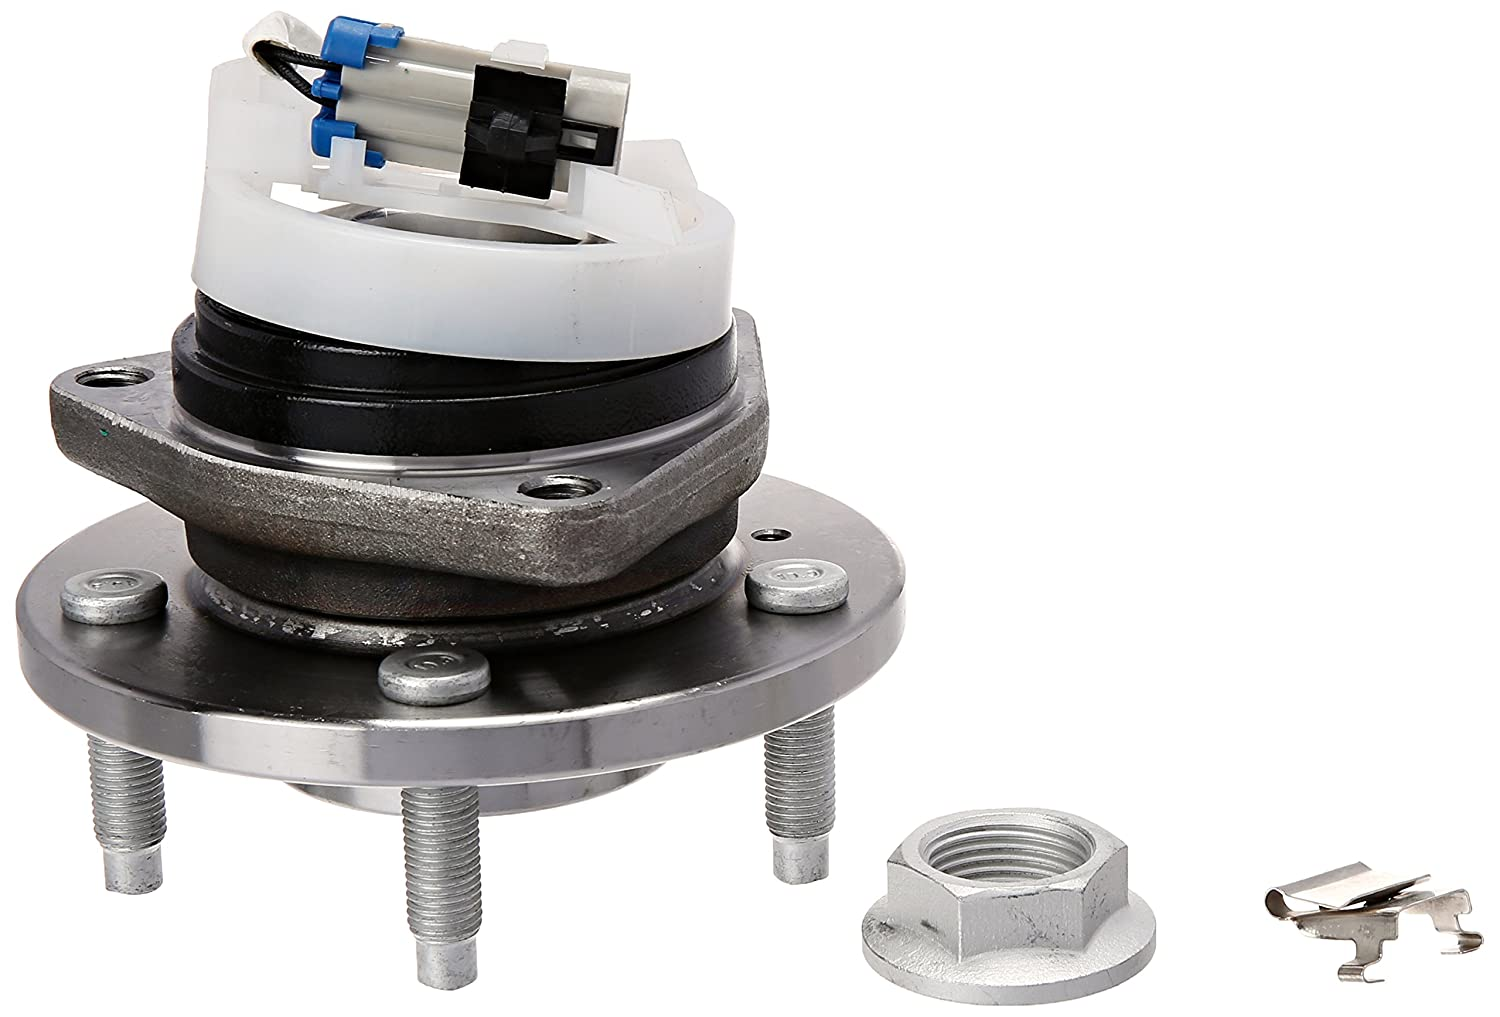 Brand New Front Wheel Hub and Bearing Assembly DeVille, Impala, LaCrosse, LeSabre, Regal, Rendezvous FWD W/ABS Detroit Axle H513179